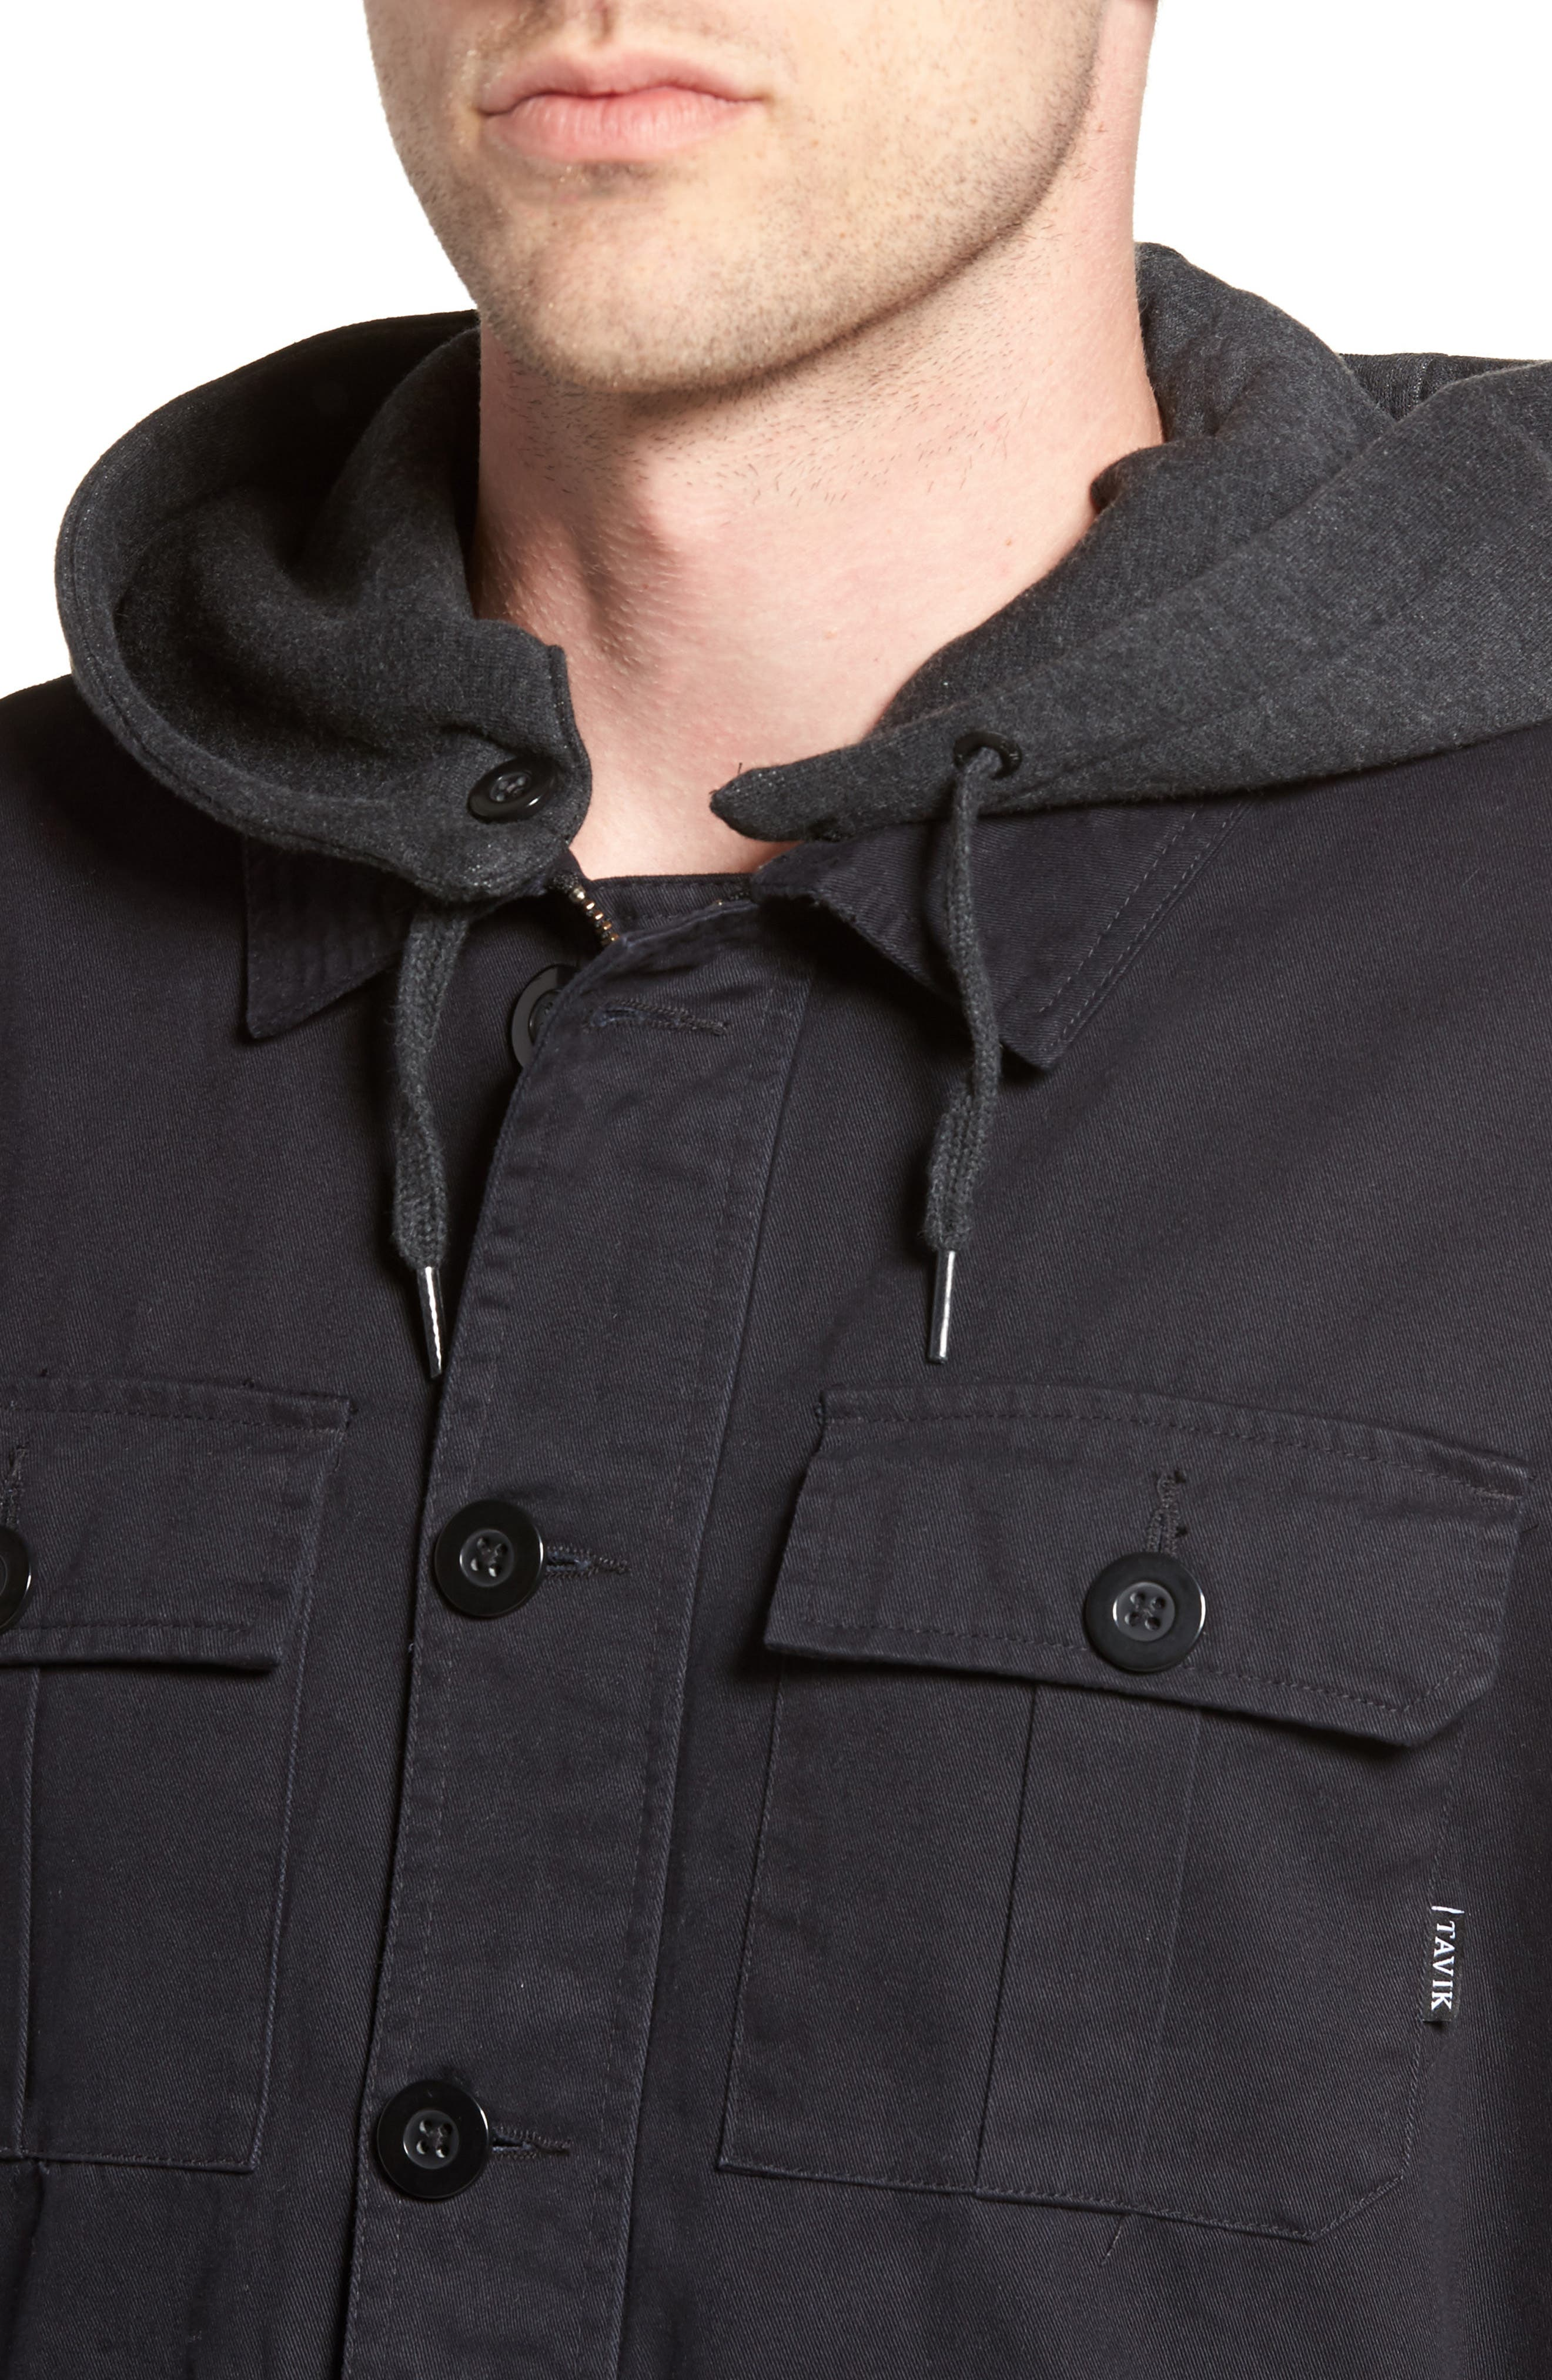 Droogs Field Jacket with Detachable Hood,                             Alternate thumbnail 4, color,                             Grey/ Heather Grey